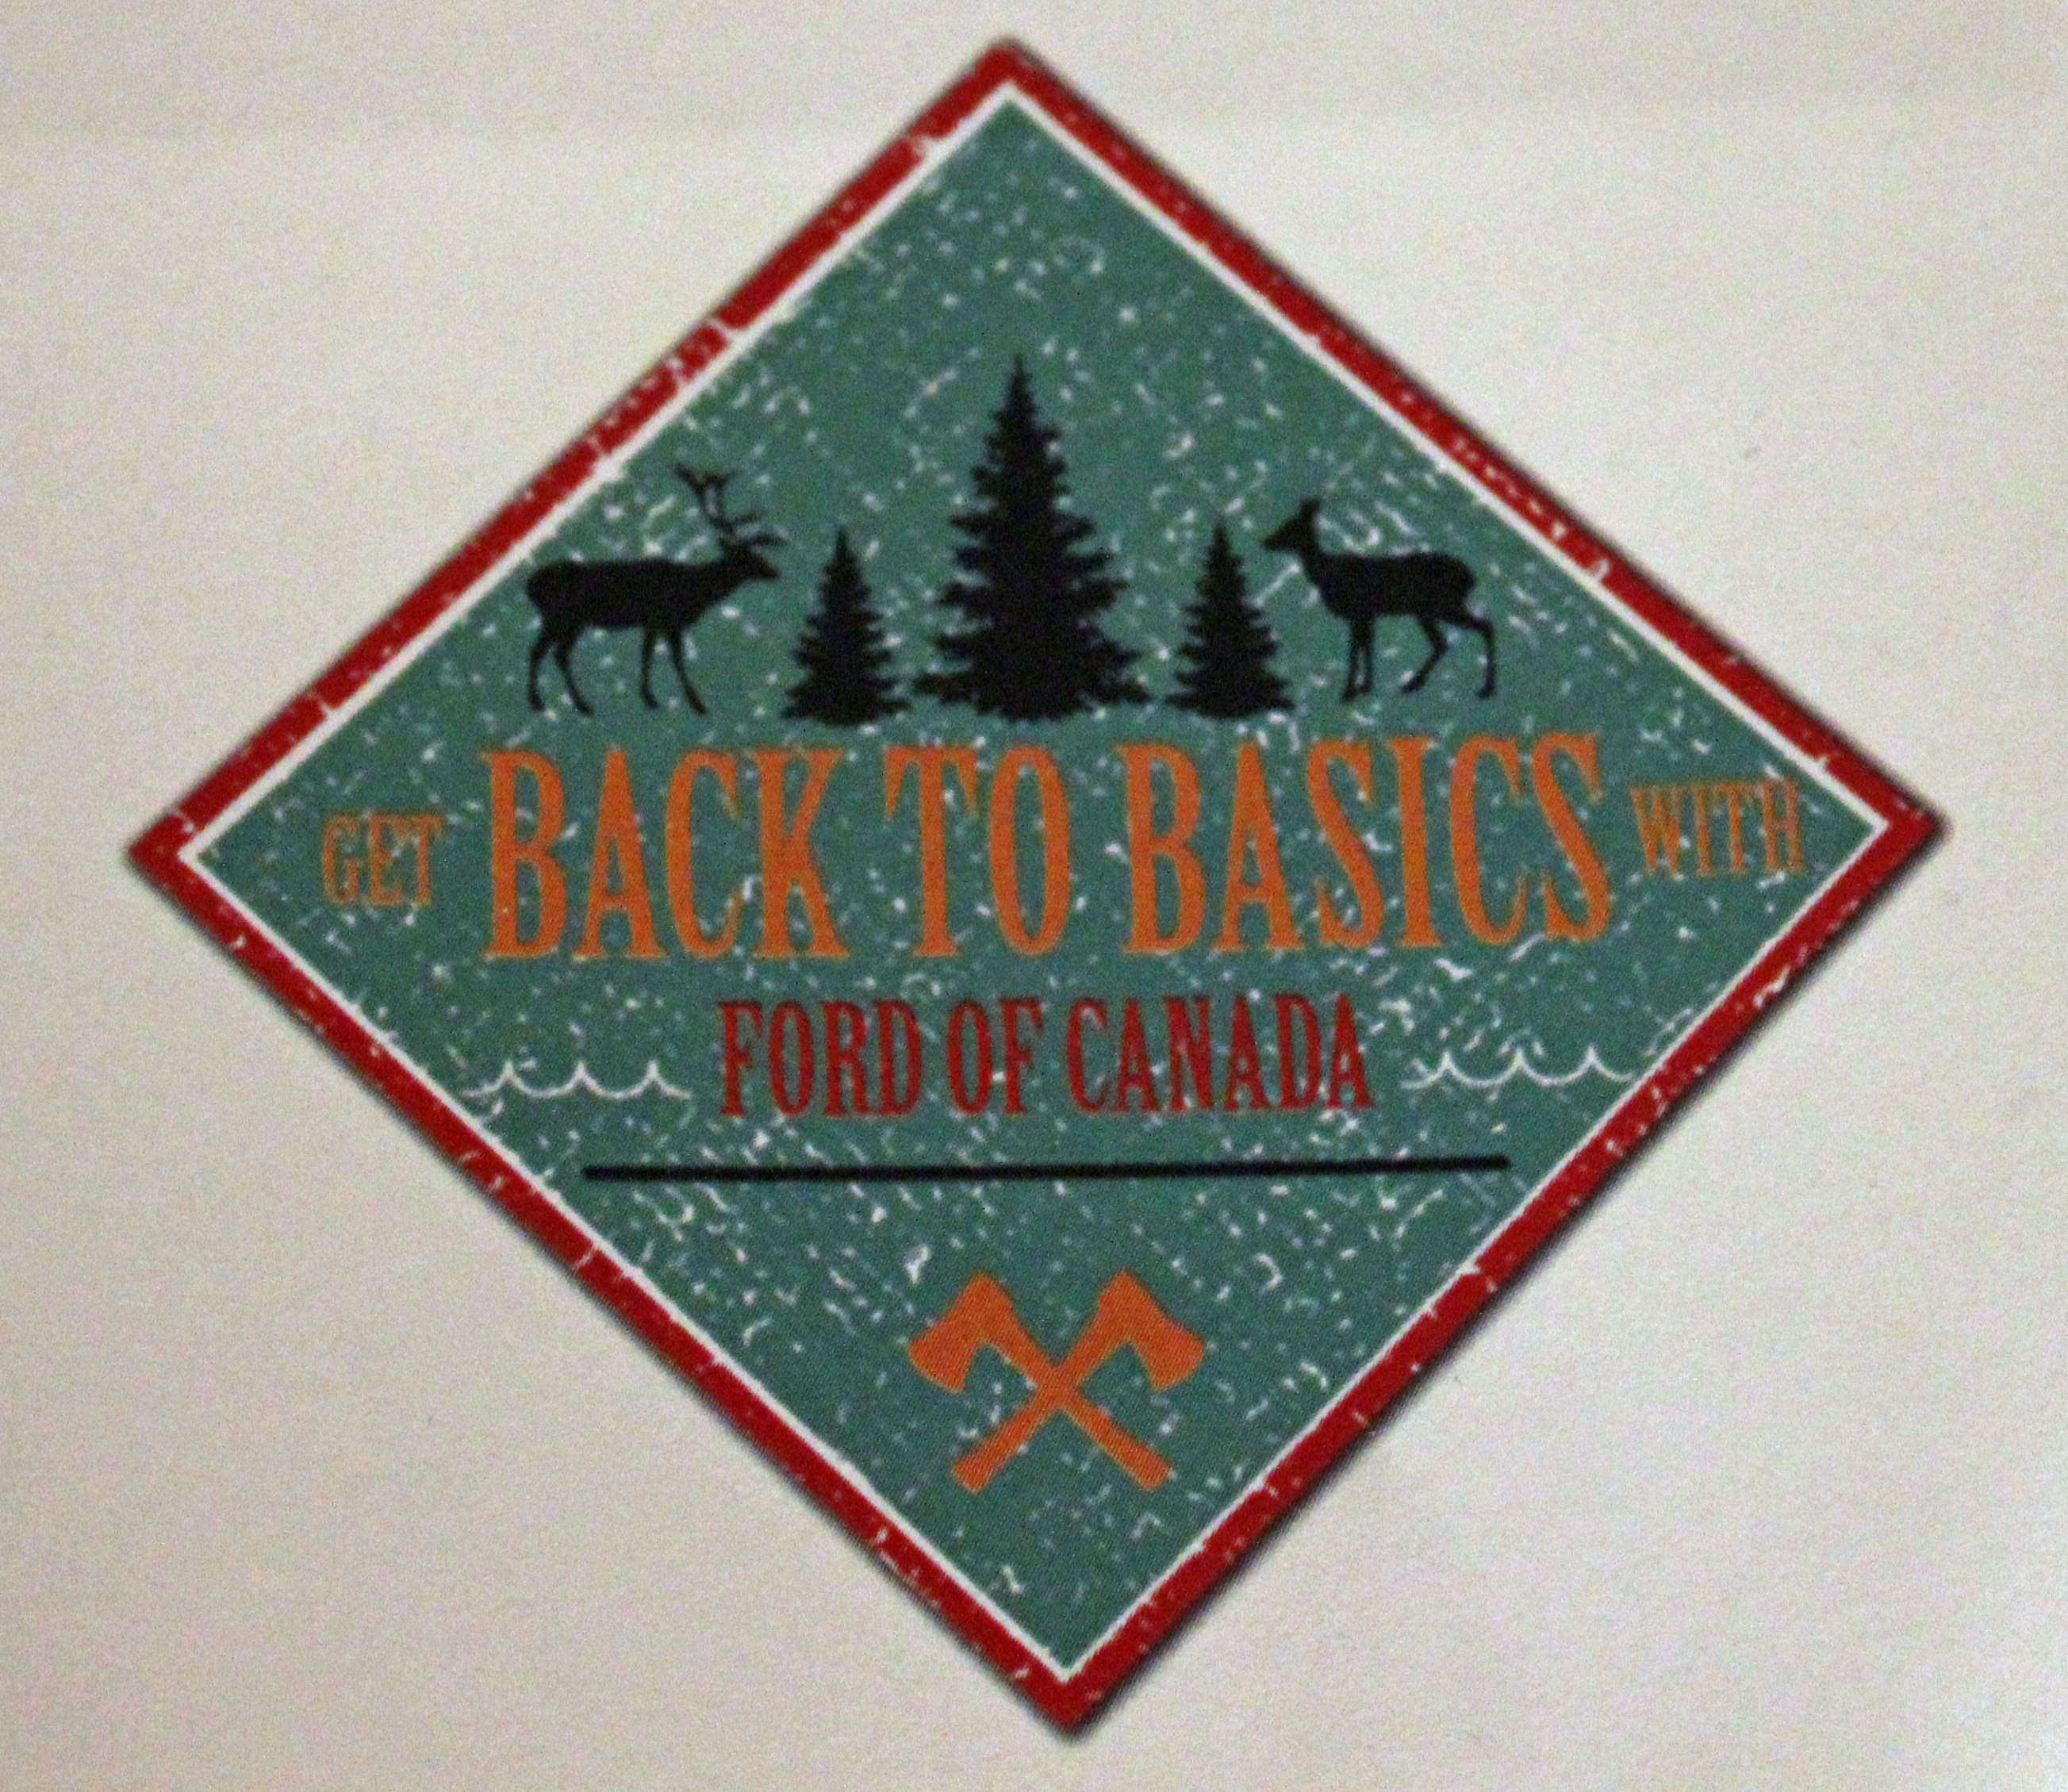 Back To Basics Kitchen: Getting Back To Basics In The Kitchen And In Life